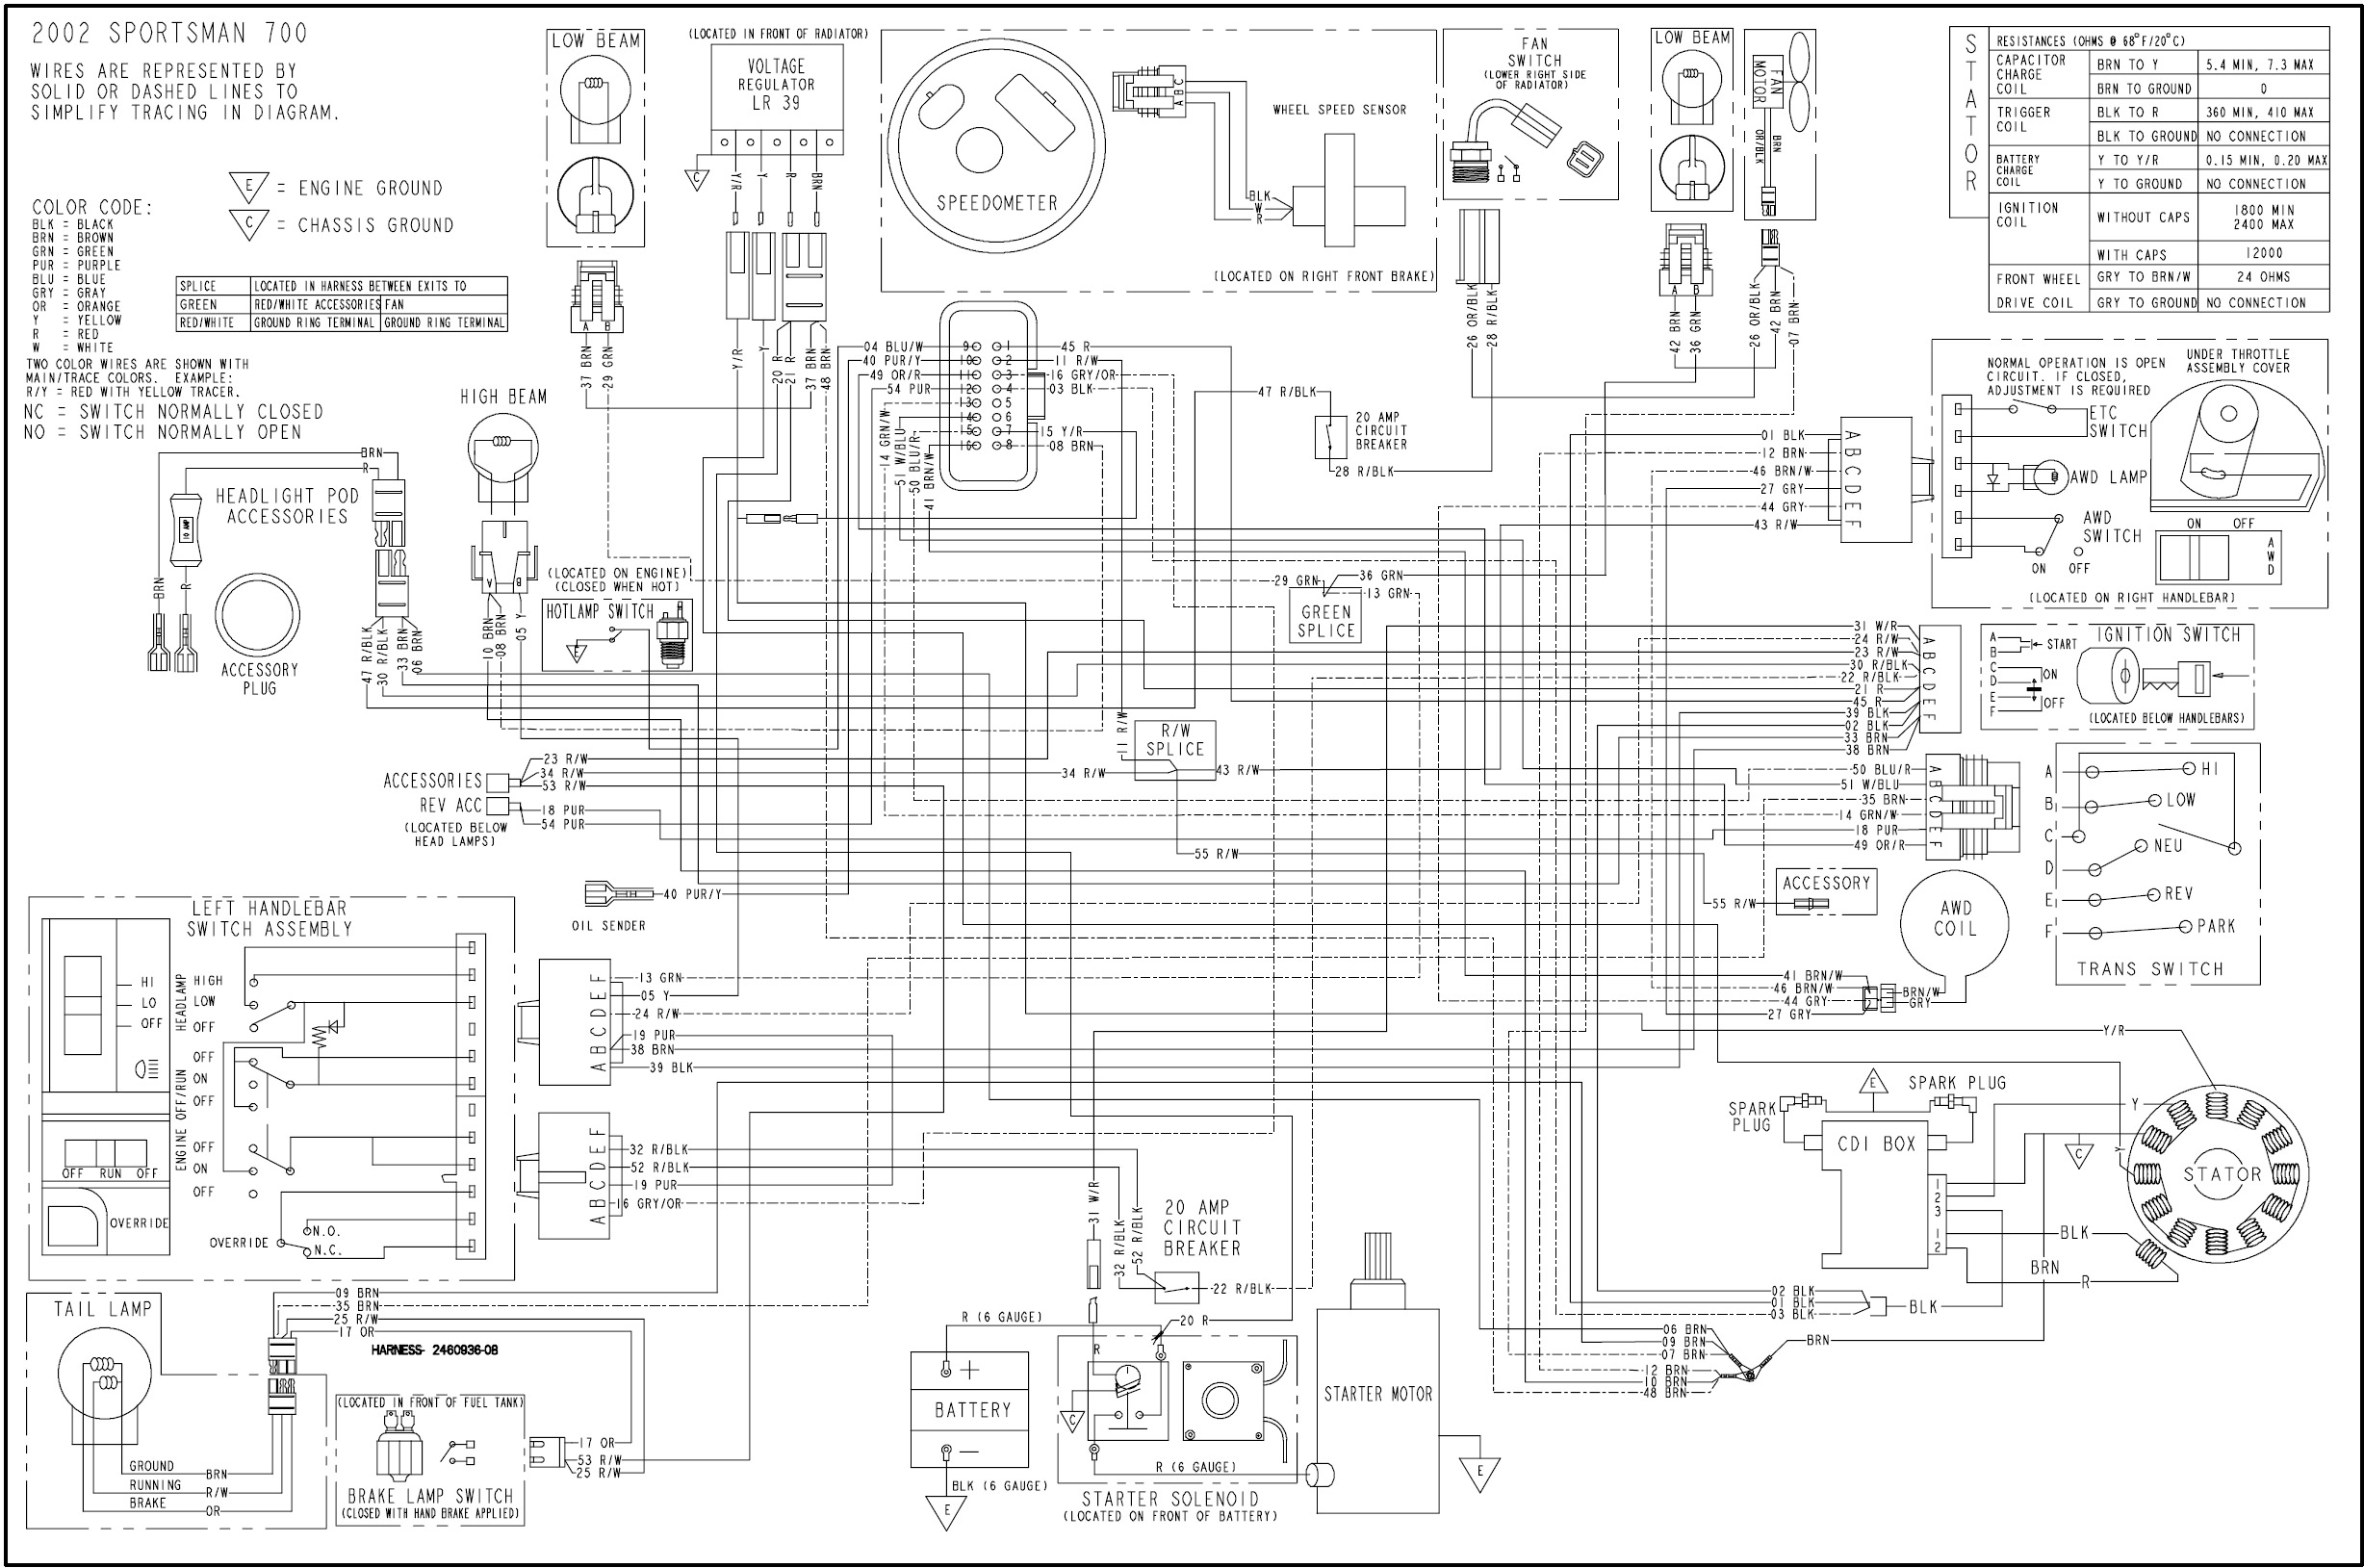 F926 2004 Honda Rancher 350 Wiring Diagram | Wiring ResourcesWiring Resources